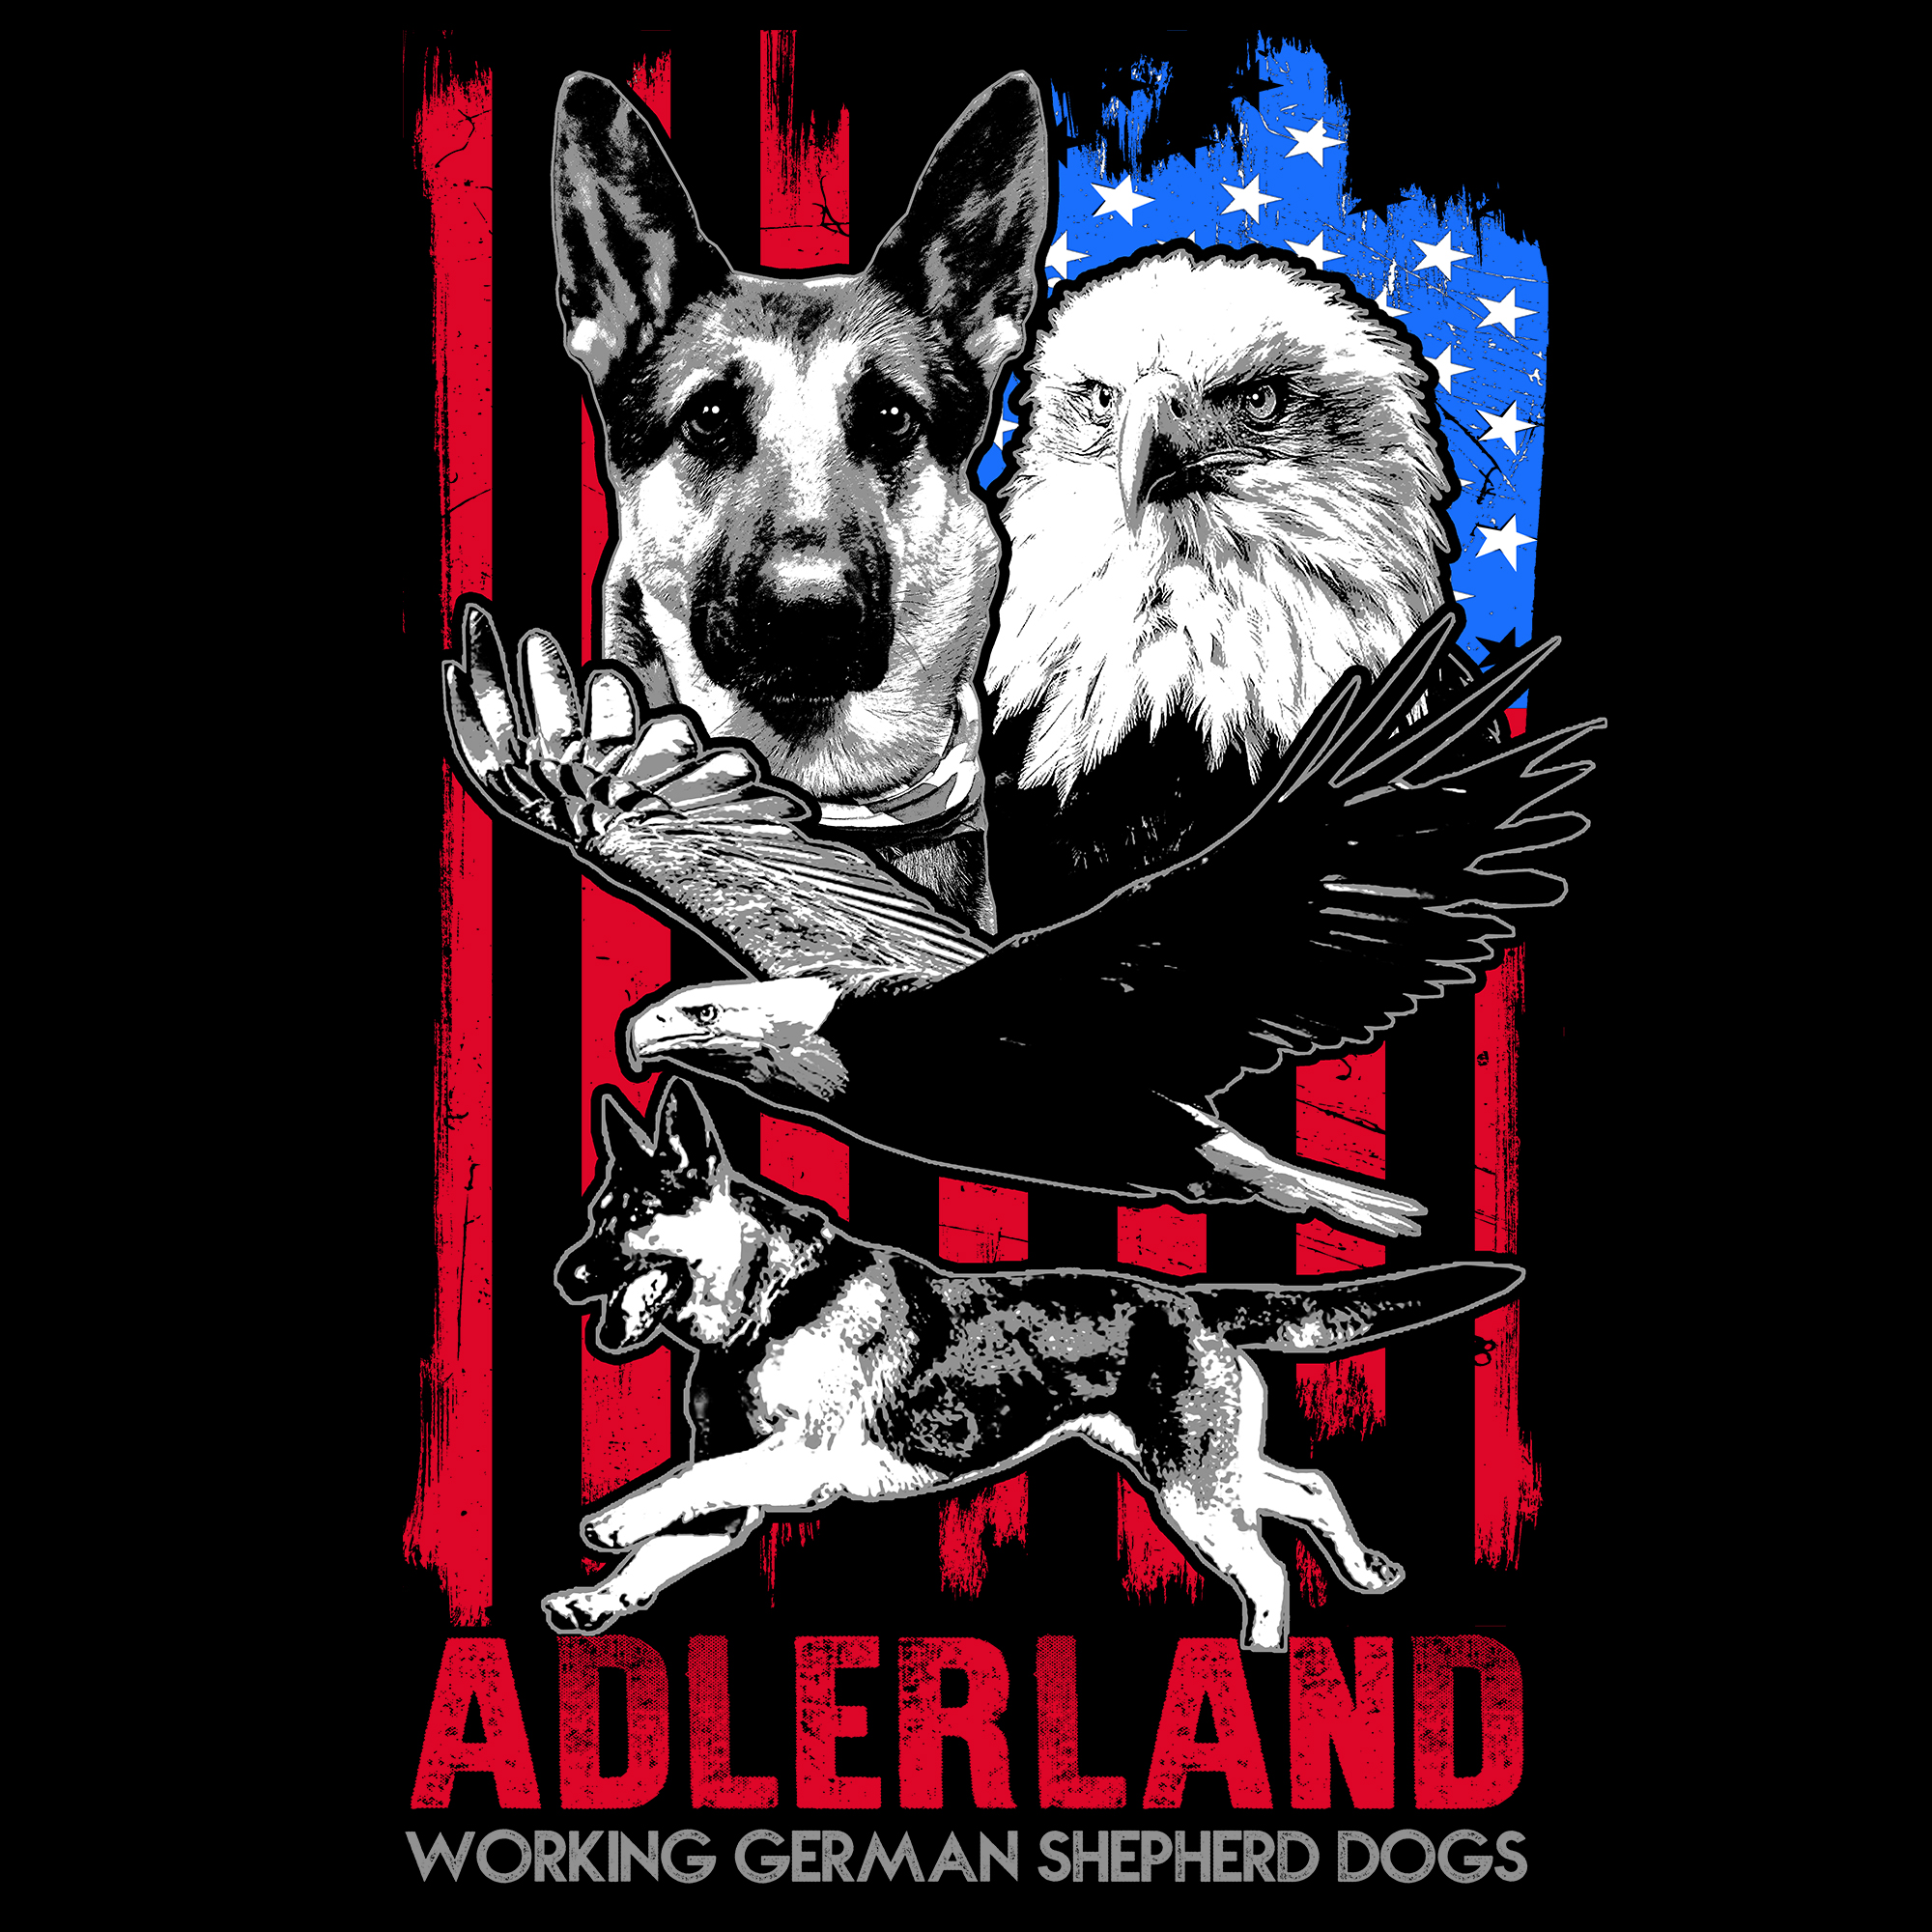 Adlerland Working German Shepherds